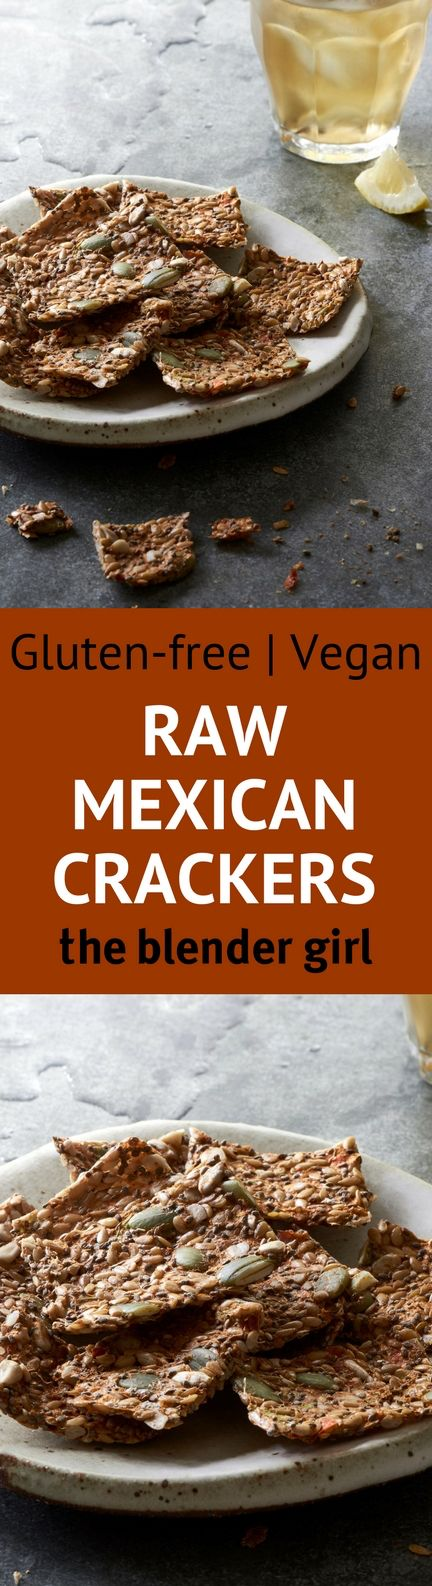 Looking for delicious raw and vegan cracker recipes? These crispy Mexican vegetable crackers are gluten free, and so easy!